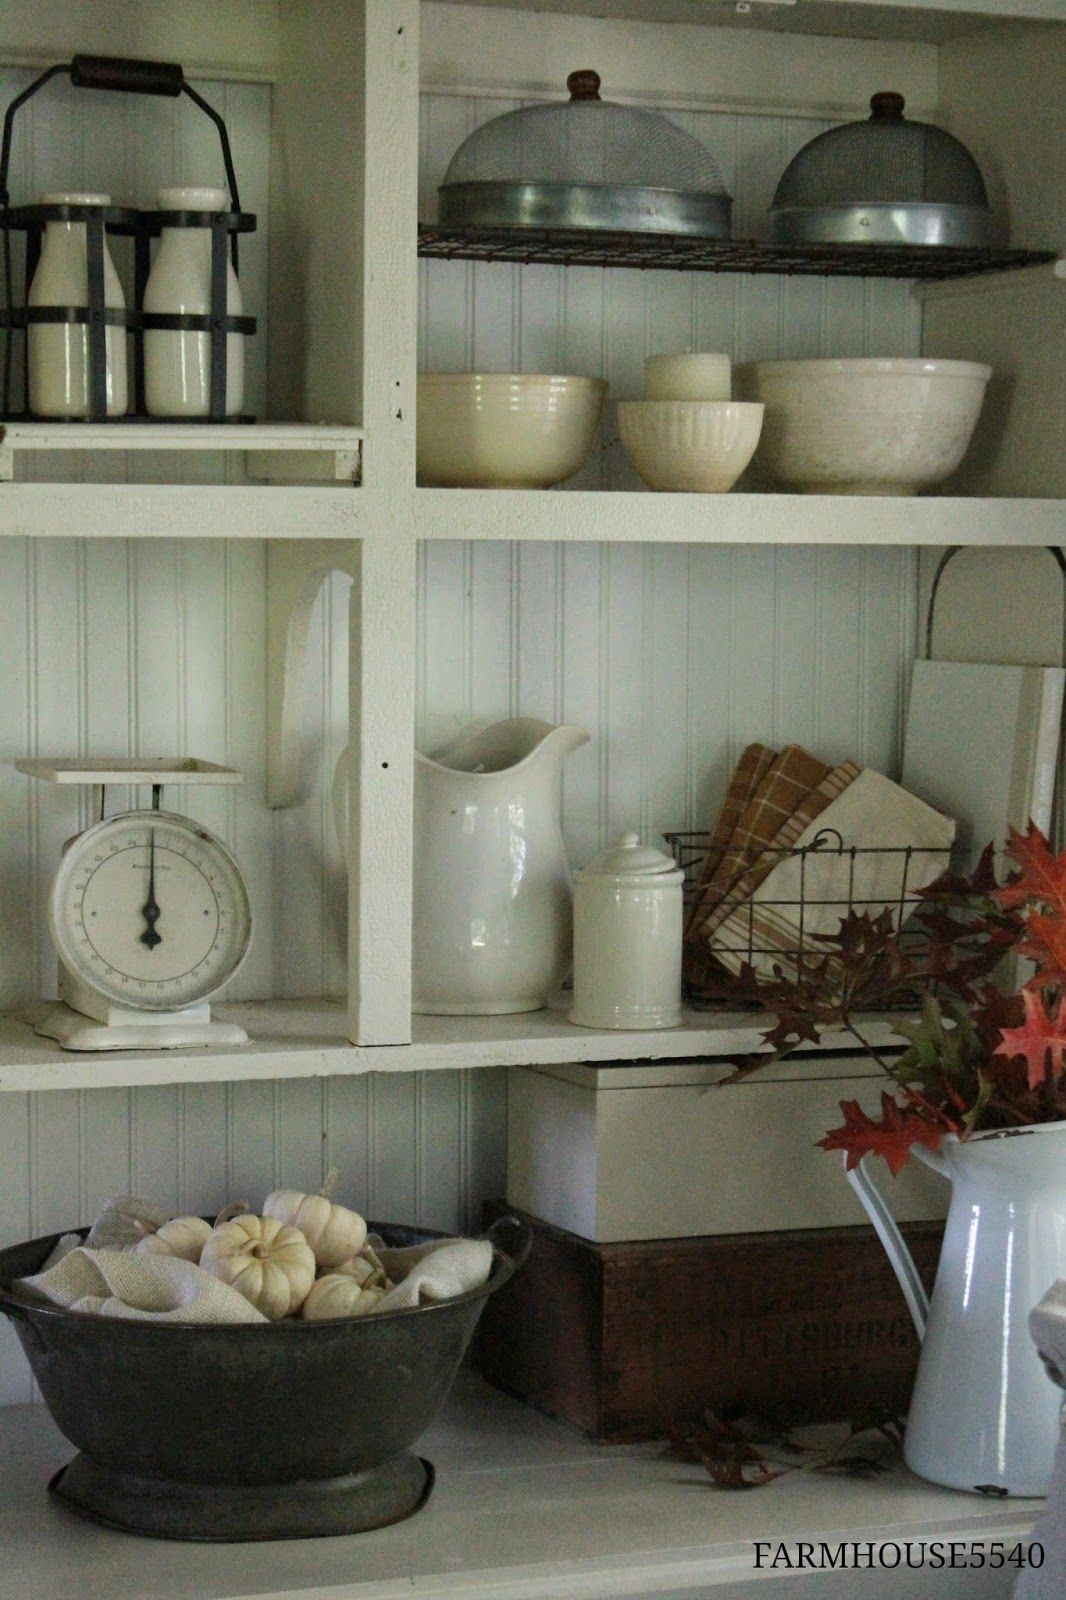 country farm kitchen decor simple country decorating ideas farmhouse 5540 shabby 5965